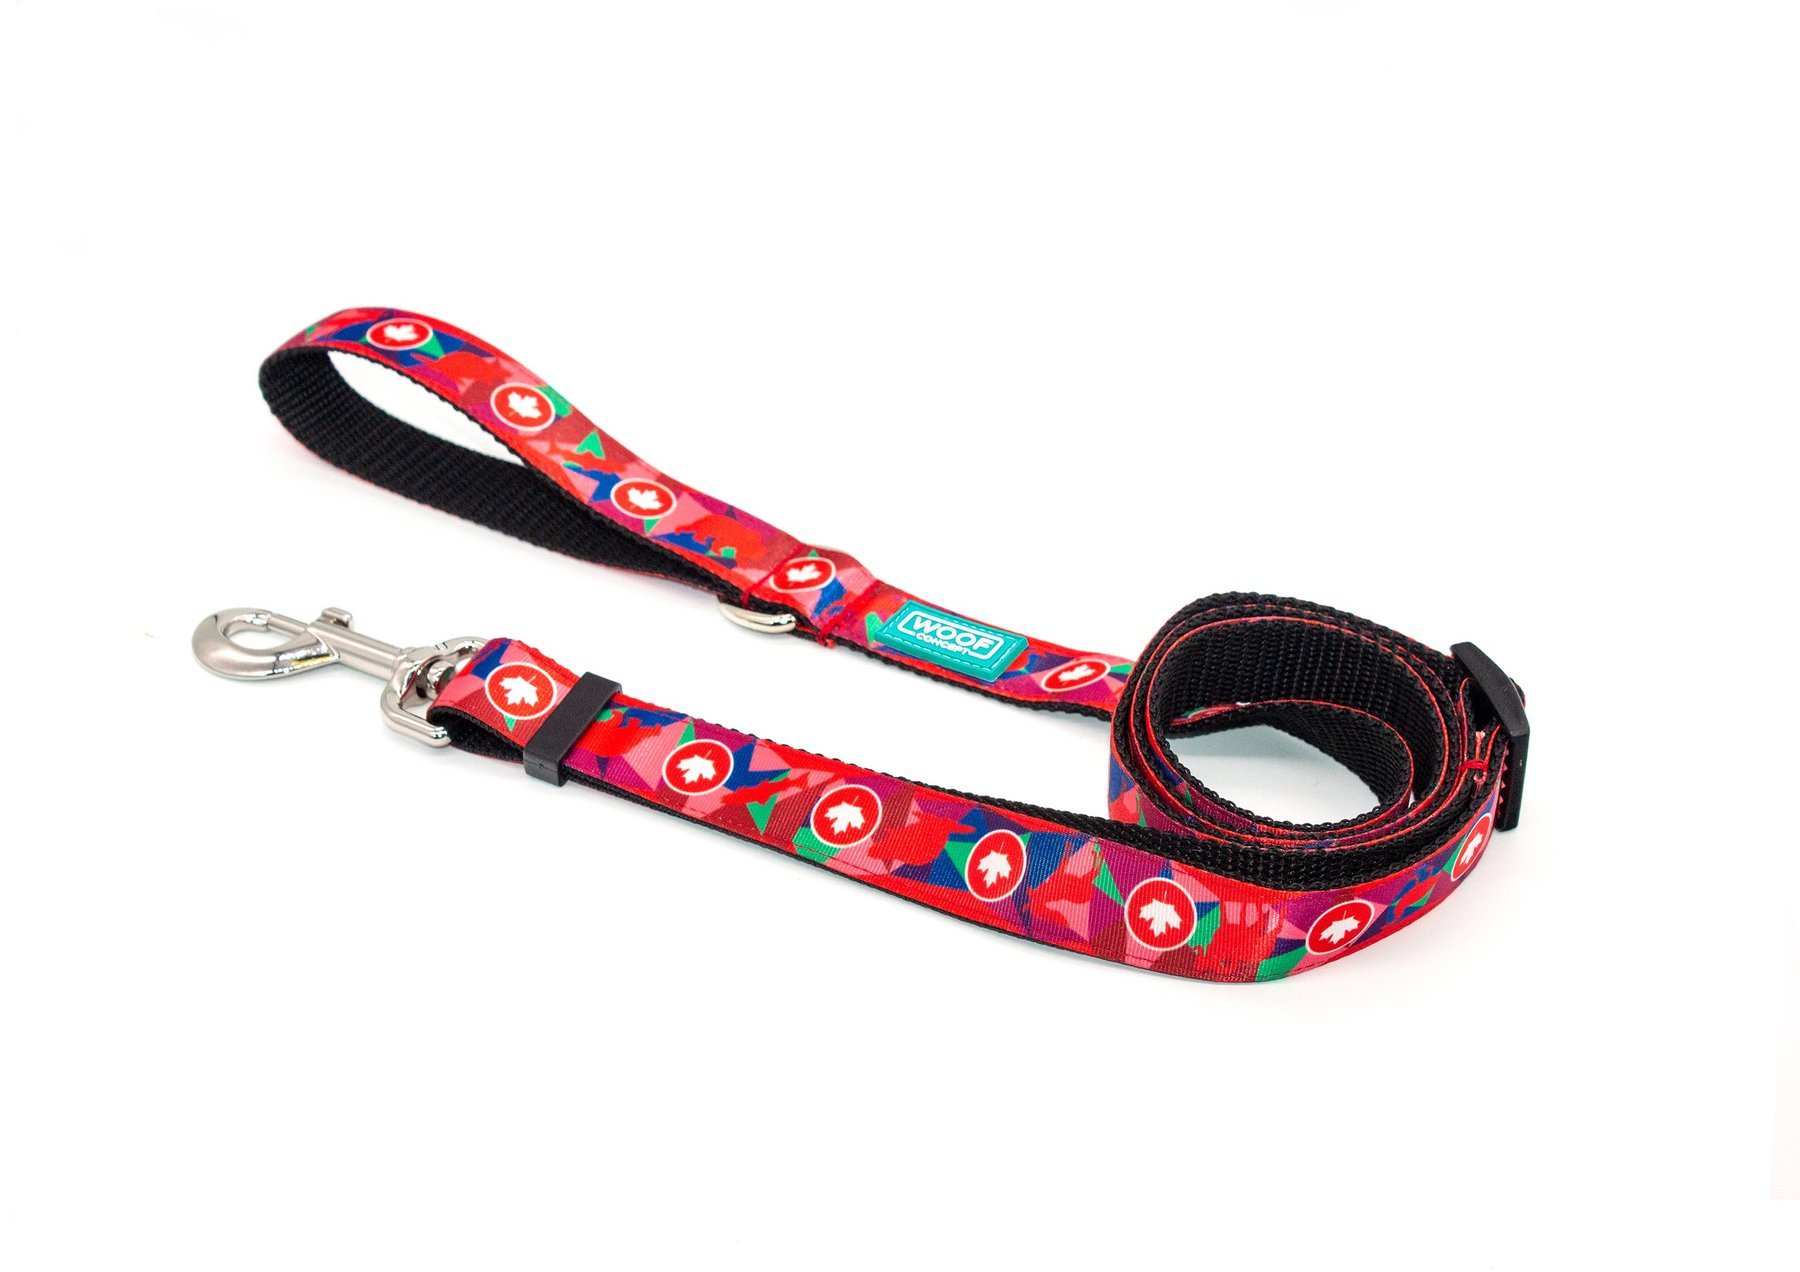 Woof Concept Leash, True North Image